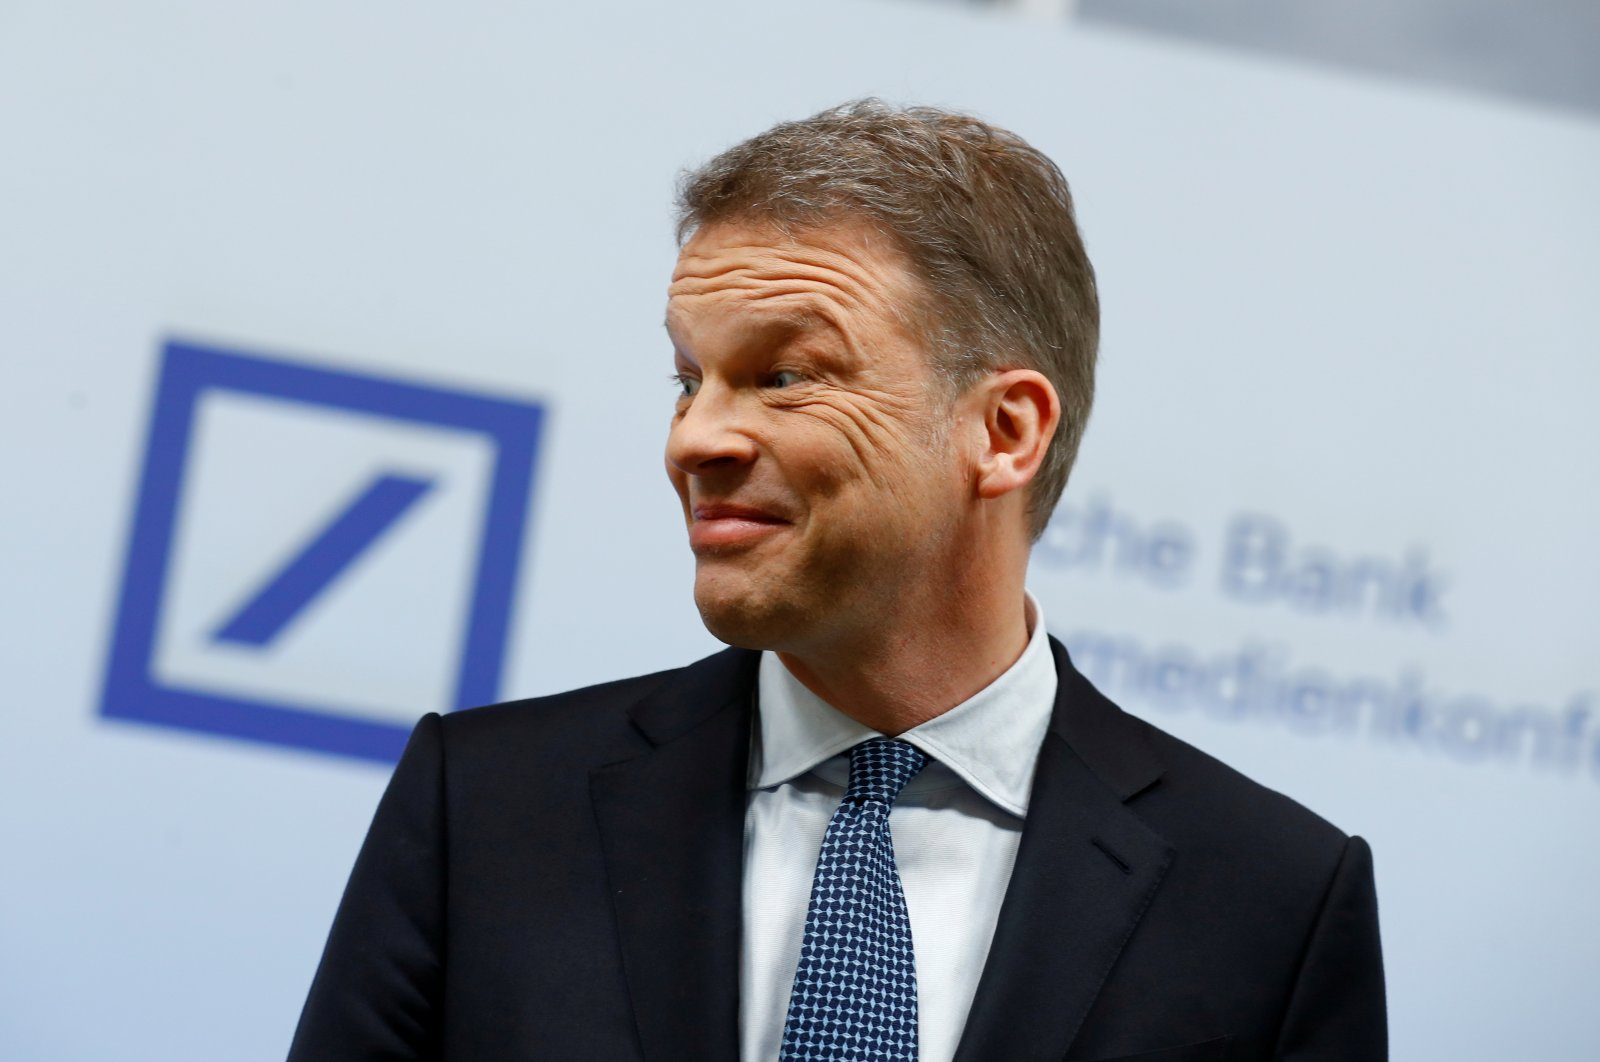 Christian Sewing, CEO of Deutsche Bank AG, arrives to address the media during the bank's annual news conference in Frankfurt, Germany, Jan. 30, 2020. (Reuters Photo)